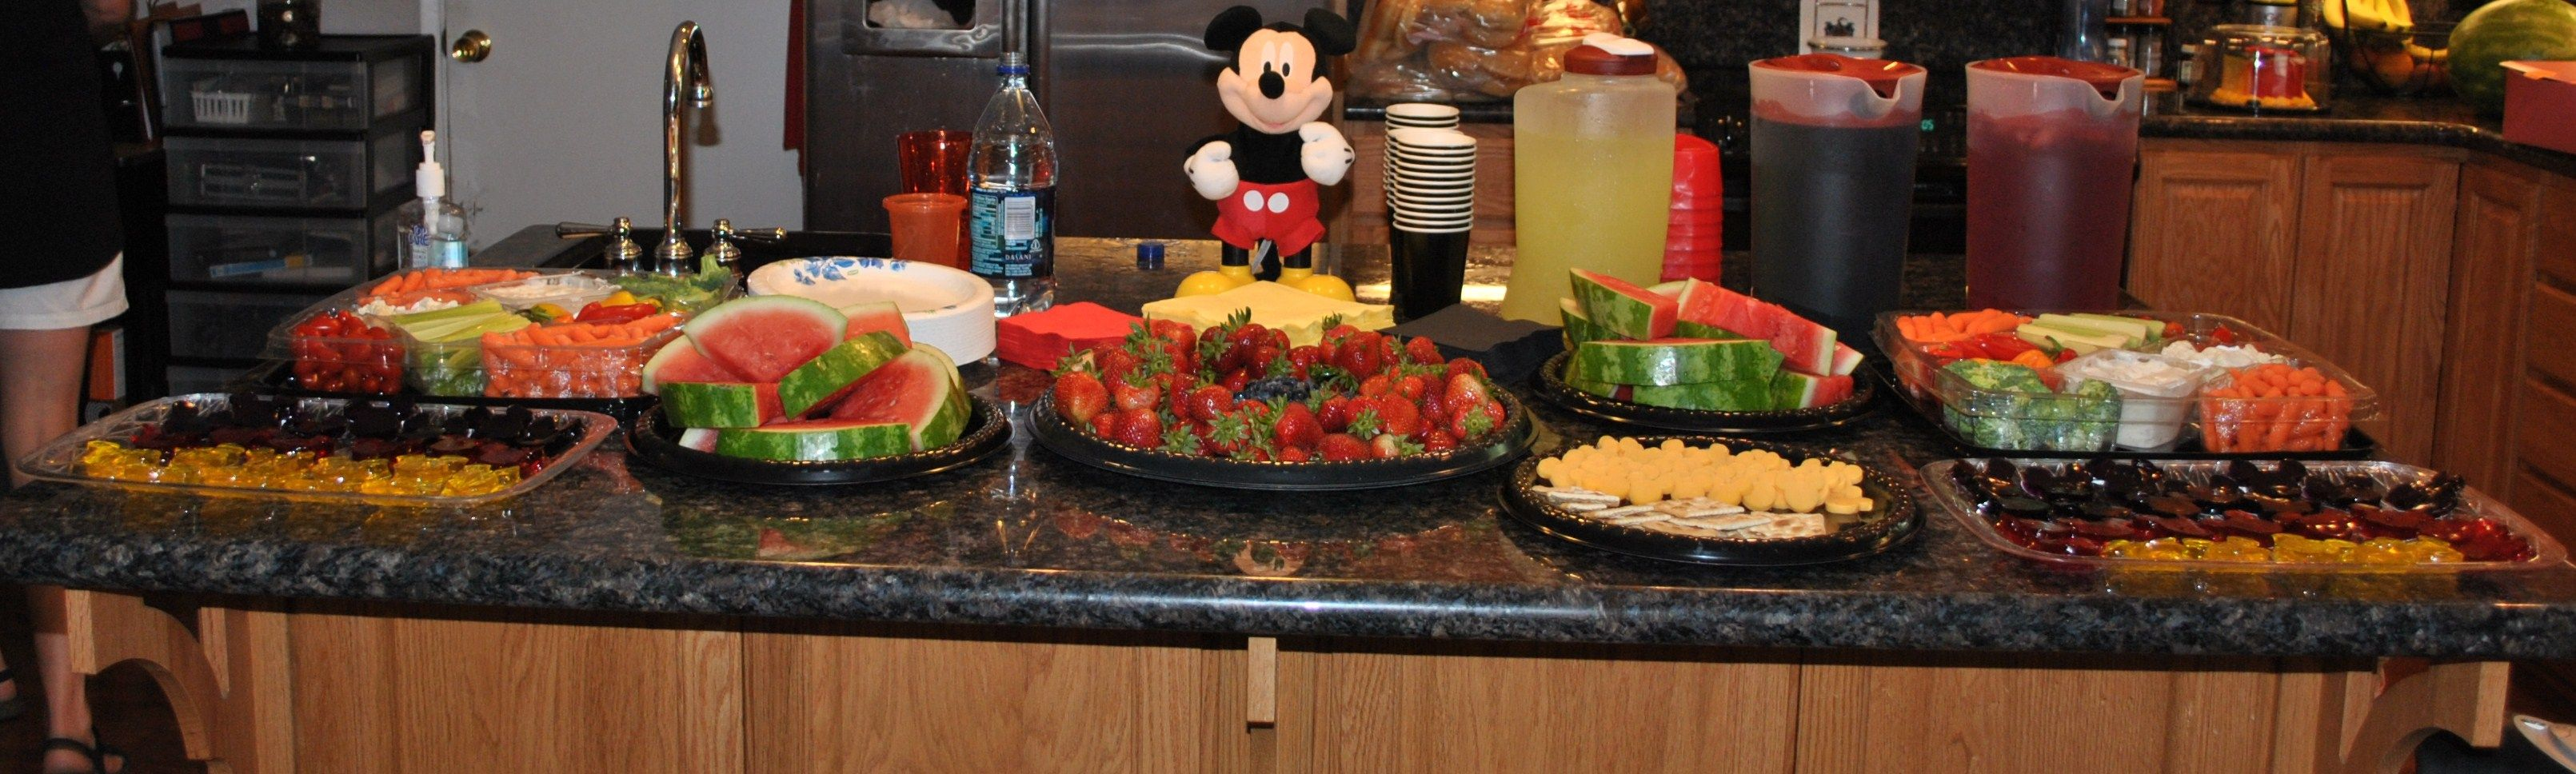 Emma's Mickey Mouse themed 2nd Birthday Party. I made Mickey Silhouette shaped jello jigglers and cheese with cookie cutters. I made Kool-Aid in grape, cherry and lemonade flavors to fit the color scheme as well as Mickey Silhouette shaped ice cubes with the same Kool-Aid flavors.